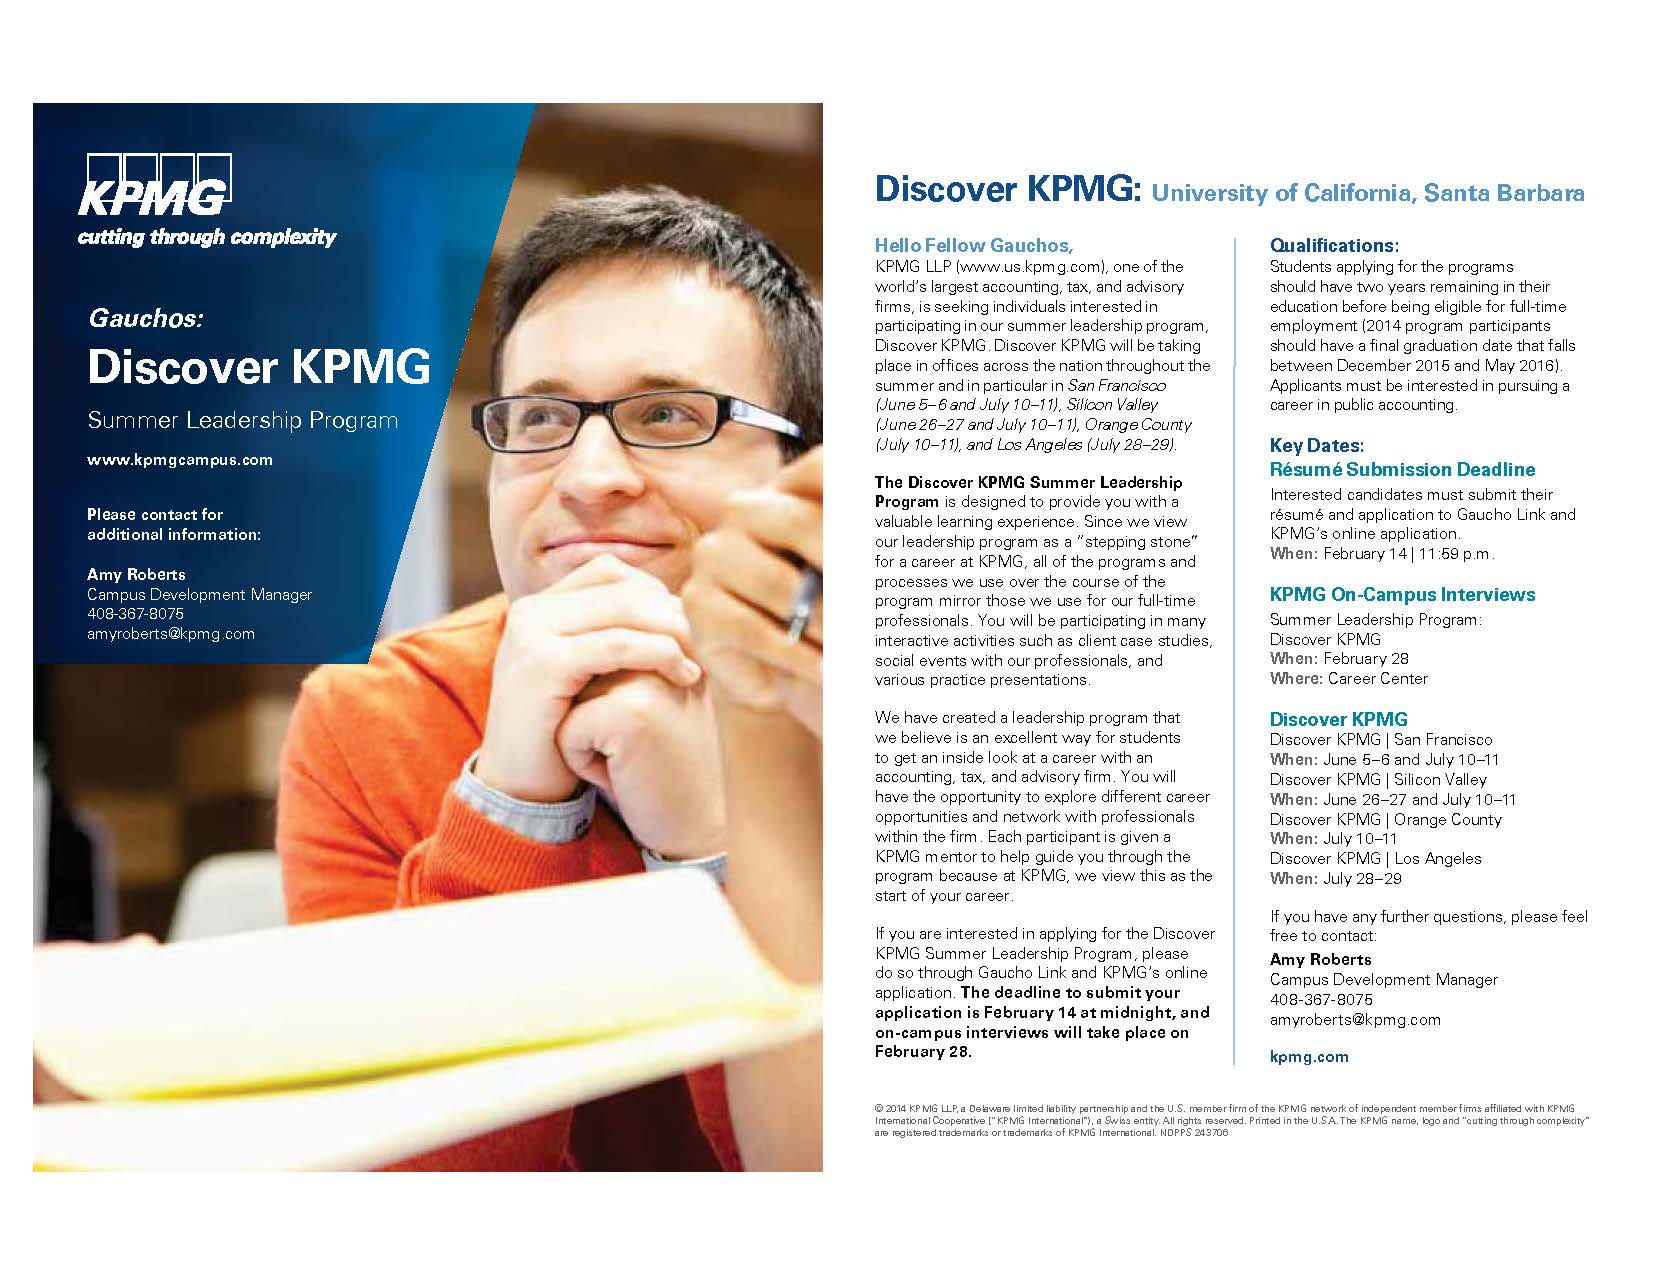 KPMG Has 2 Great Summer Programs